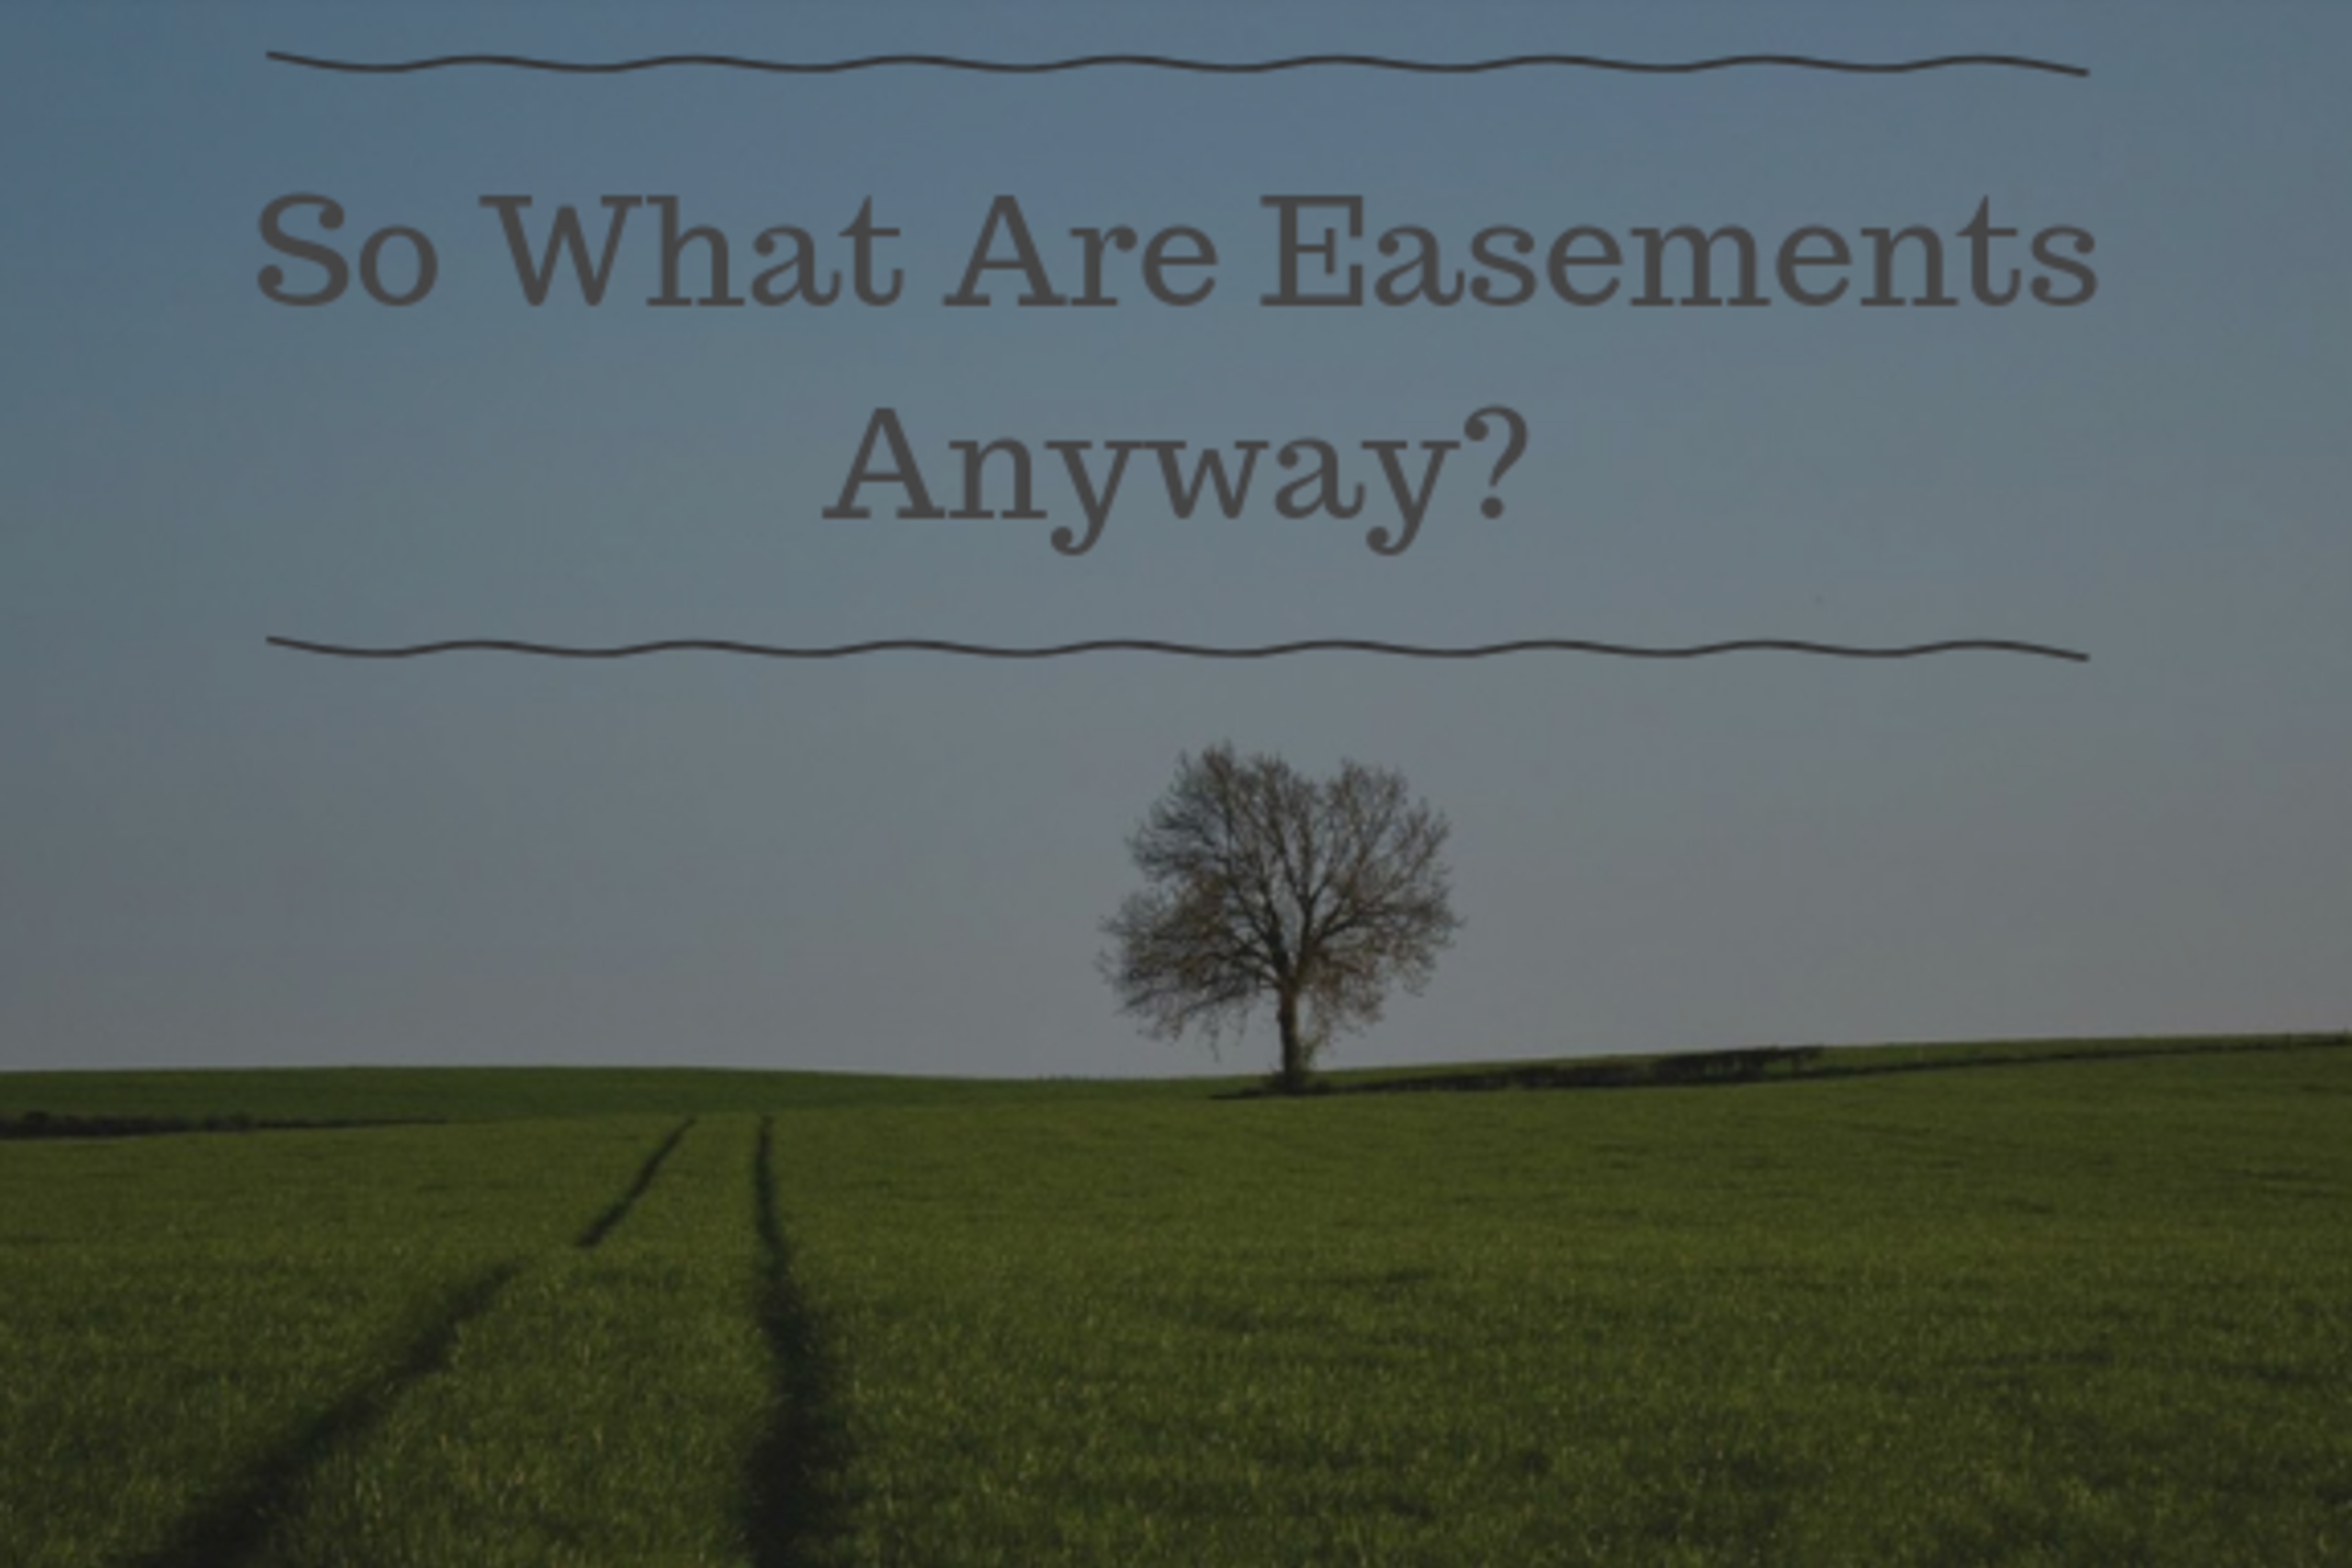 What Are Easements?